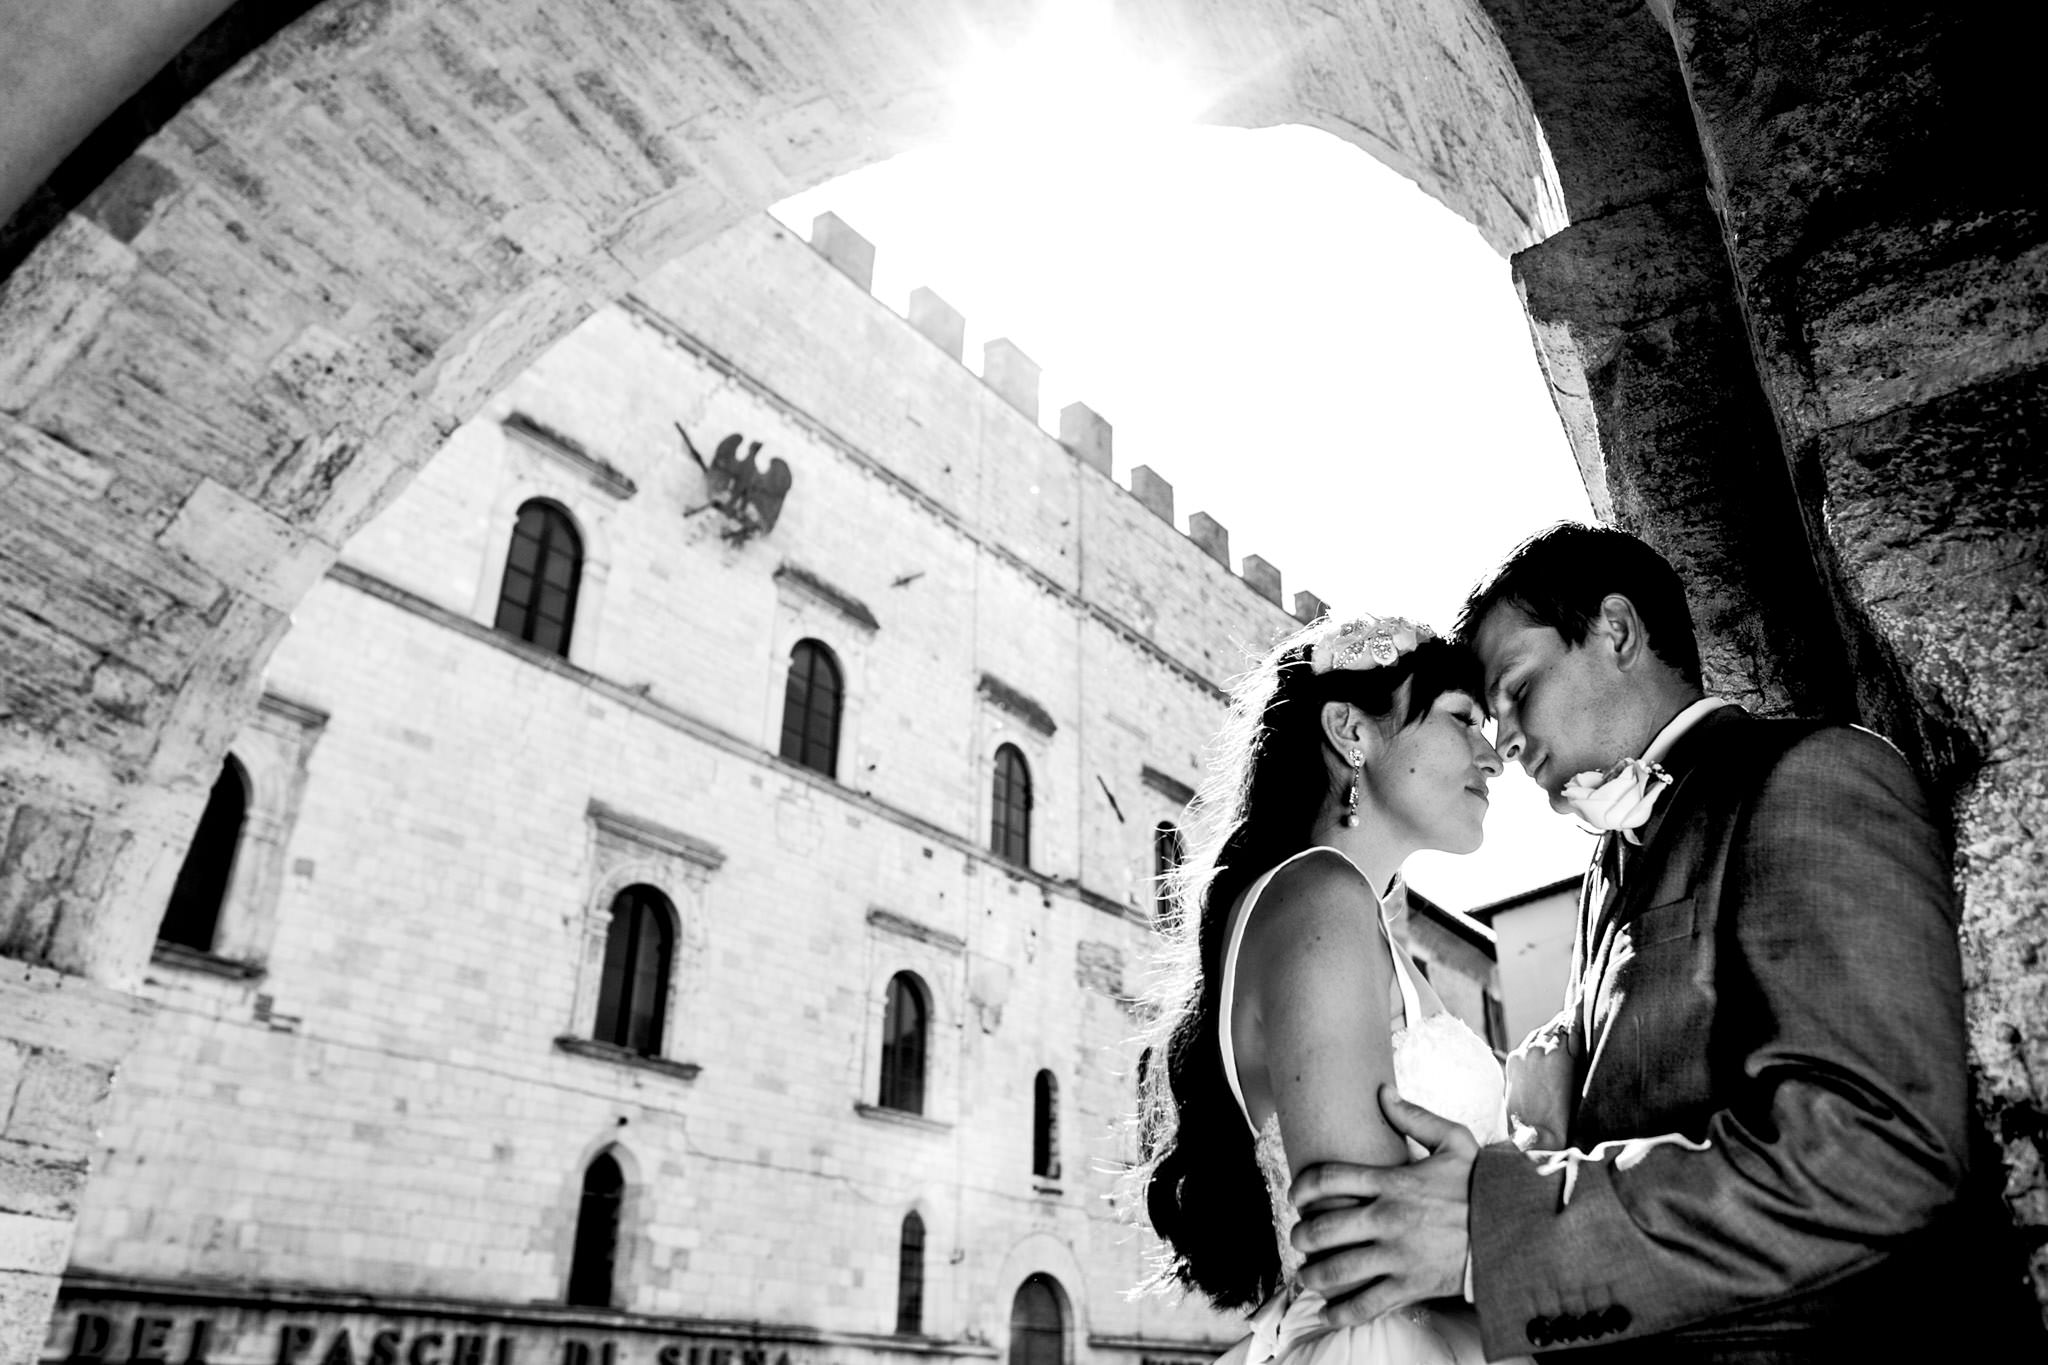 Bride and groom embracing under arched doorway in Todi Italy Umbria